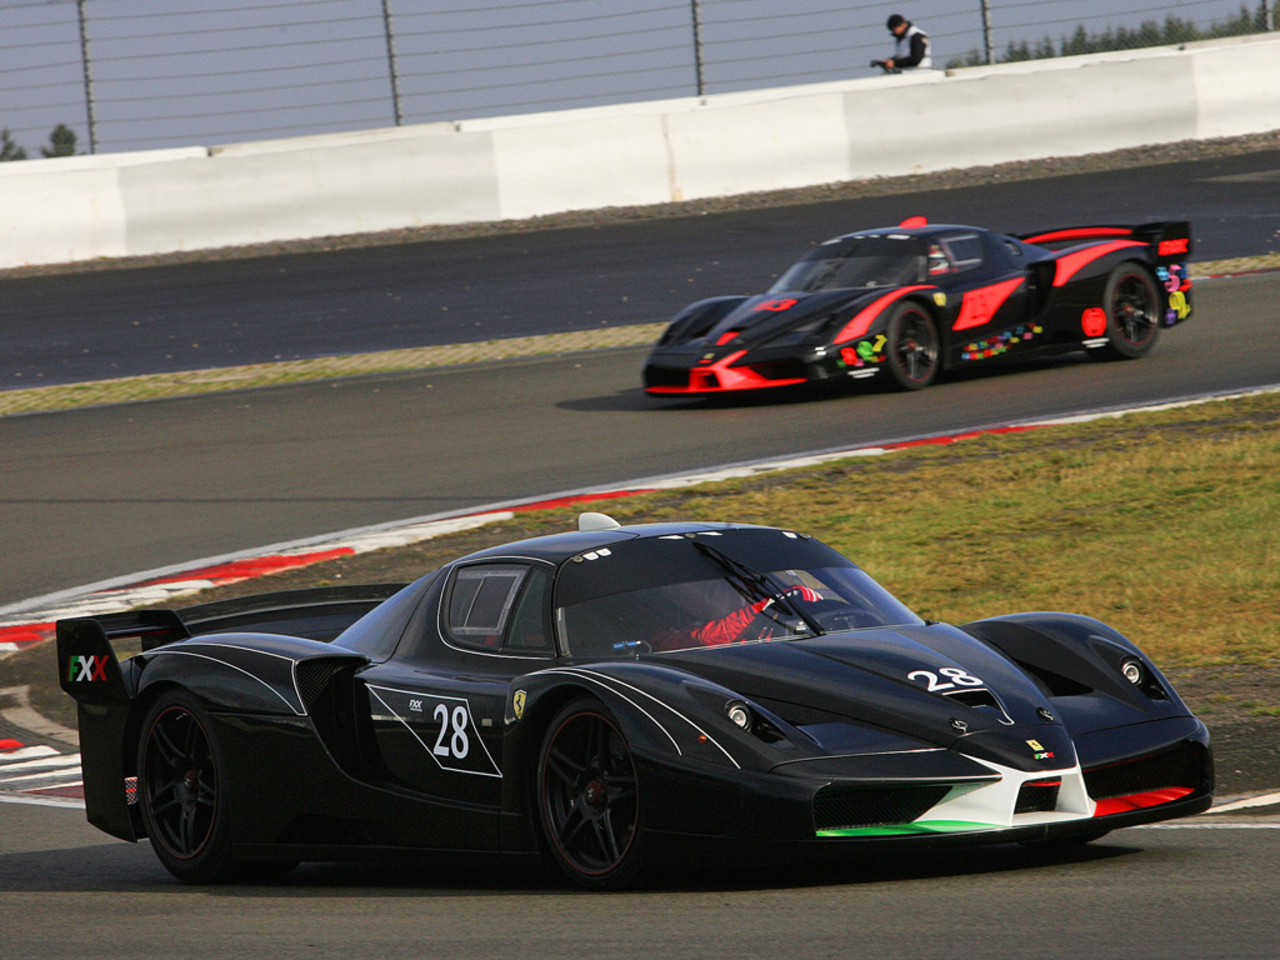 FXX Prototype at Nuerburgring circuit